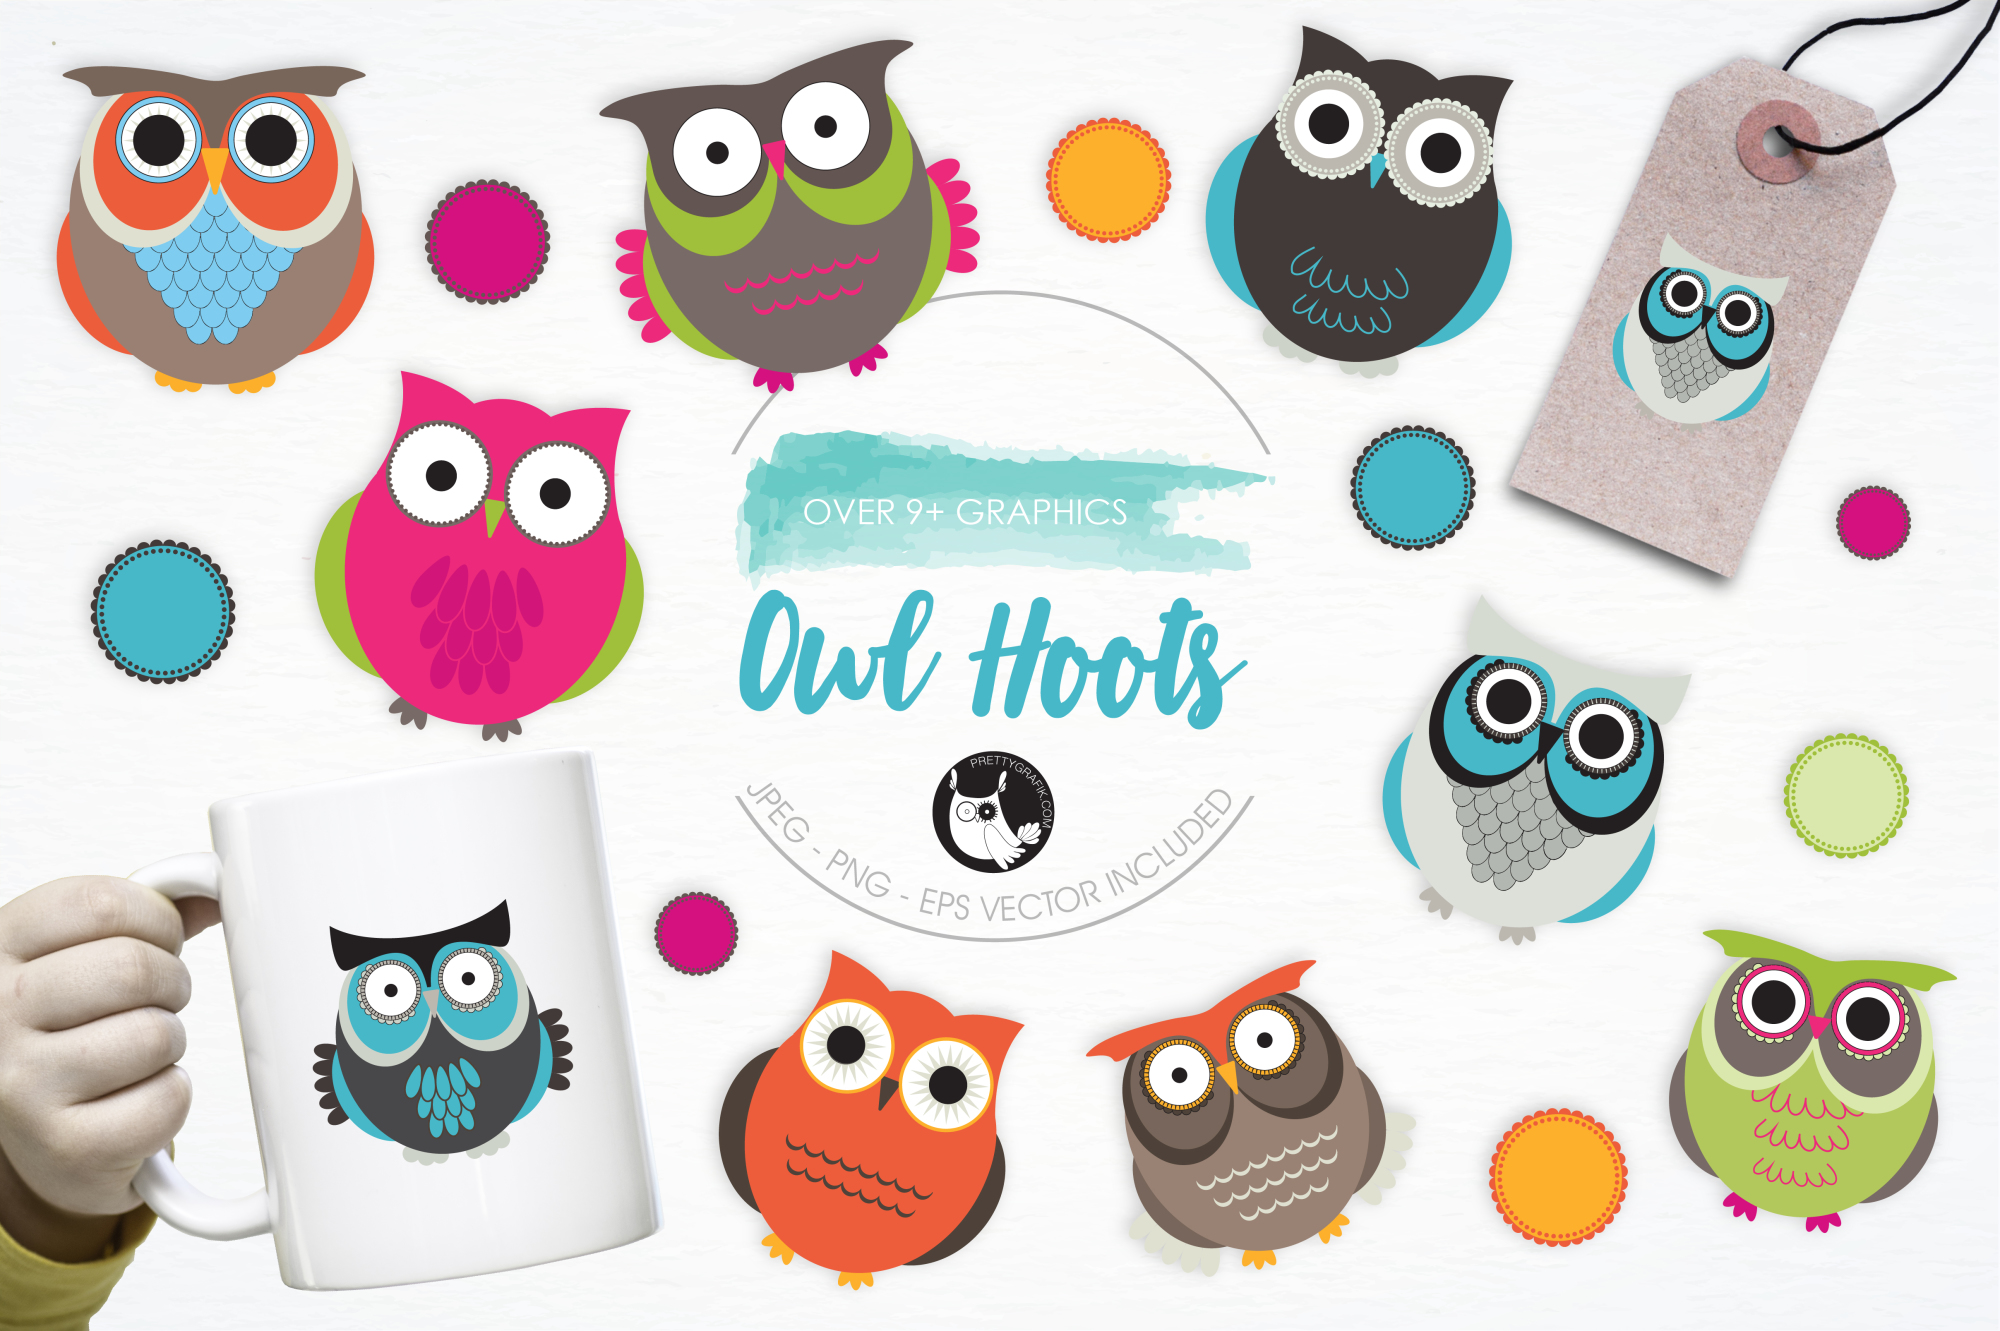 Owl Hoots graphics and illustrations example image 1